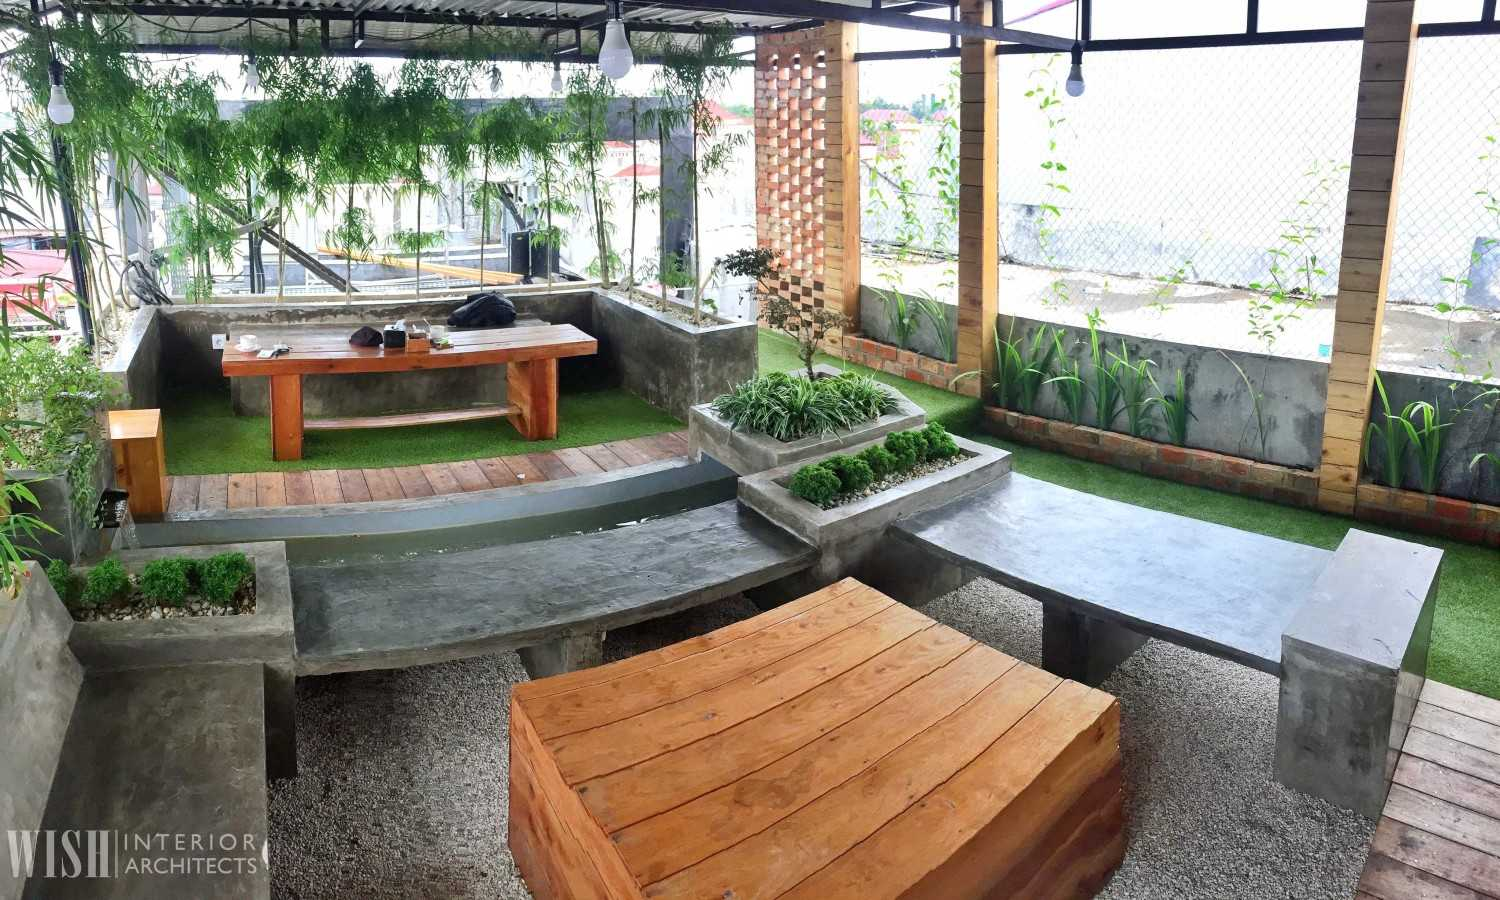 Wish Interior+Architects V Rooftop Garden Pekanbaru Pekanbaru Rooftop Area  28290